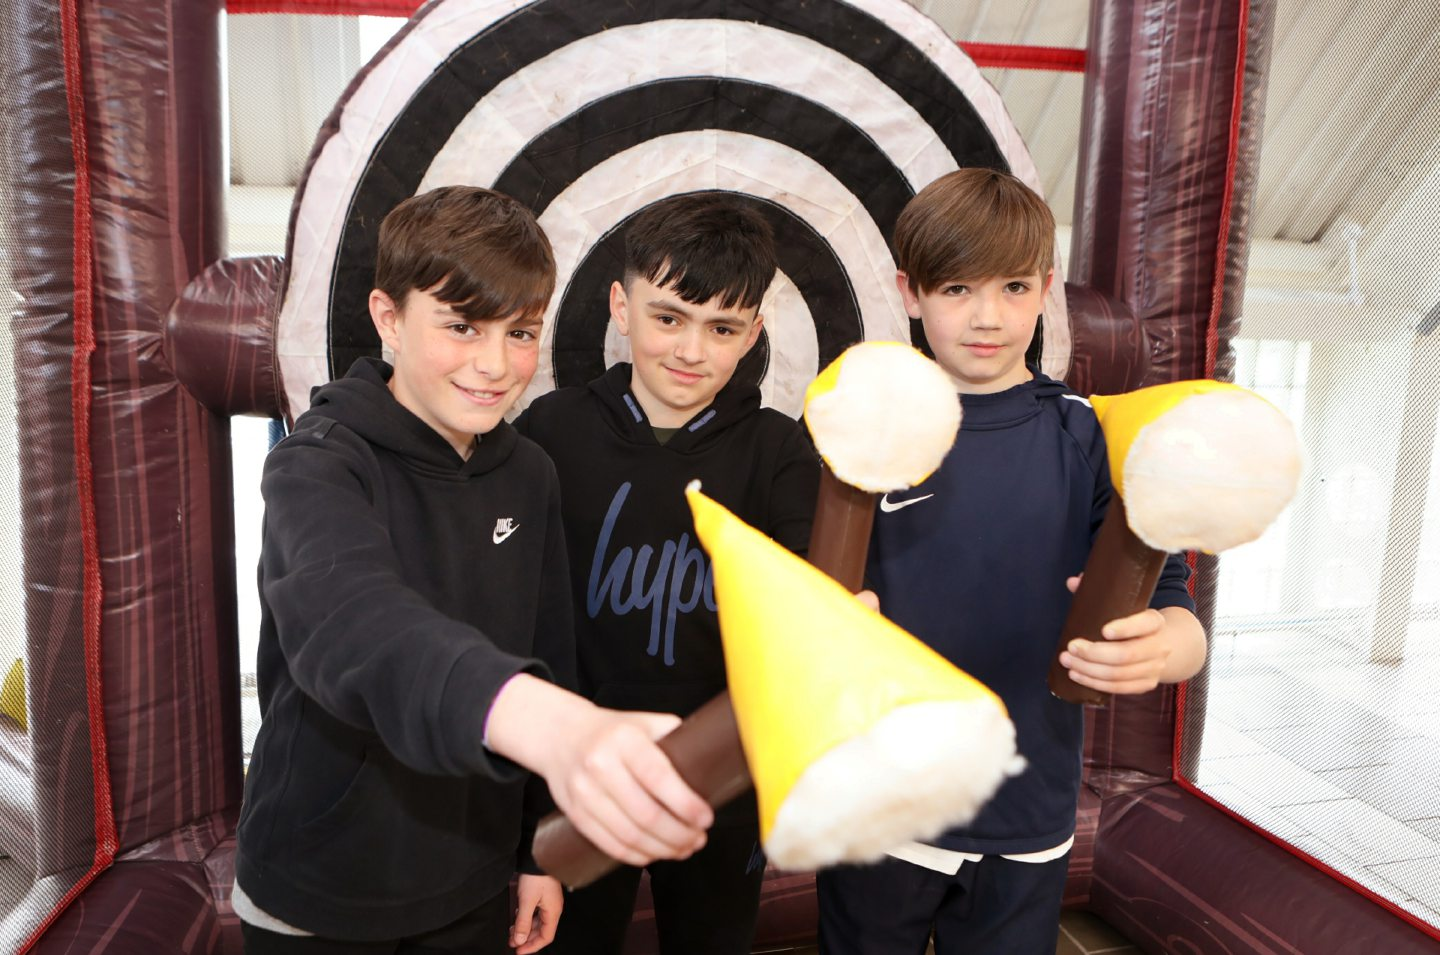 Liam Malone, Steven Hendry and Michael Duff try axe throwing.